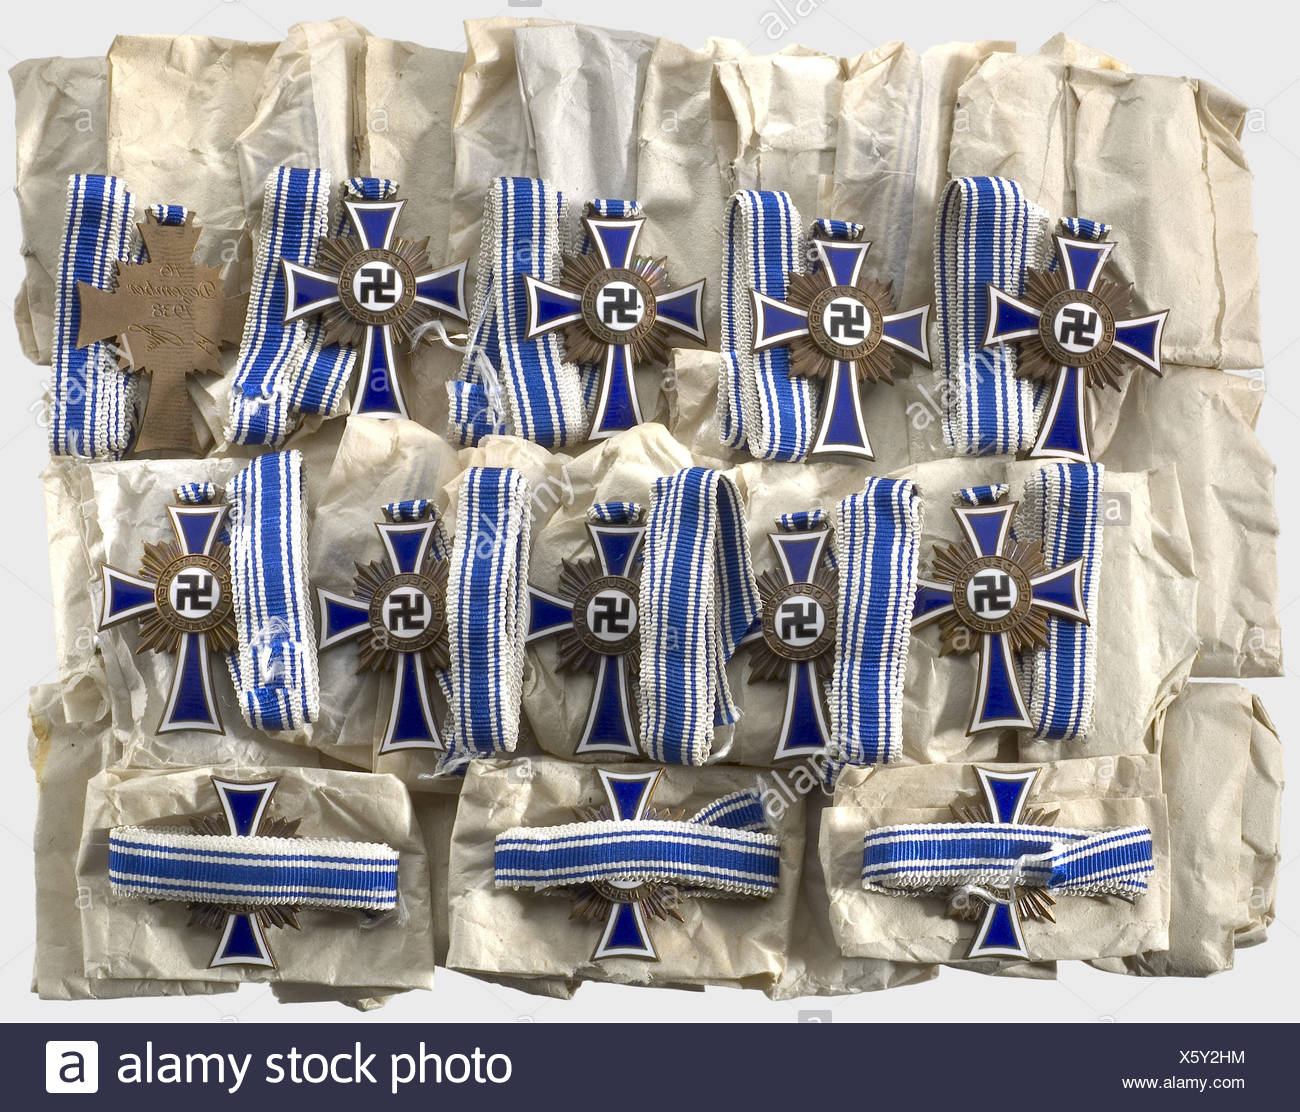 50 Mother's Crosses in Bronze, of the firm Deschler & Son. All are with ribbons, in original tissue papers, and in outstanding, unworn condition (OEK 3515). From a Munich attic find. Cf. Hermann Historica auction 53, lots 3128 to 3131. historic, historical, 1930s, 1930s, 20th century, awards, award, German Reich, Third Reich, Nazi era, National Socialism, object, objects, stills, medal, decoration, medals, decorations, clipping, cut out, cut-out, cut-outs, honor, honour, National Socialist, Nazi, Nazi period, Additional-Rights-Clearences-NA - Stock Image